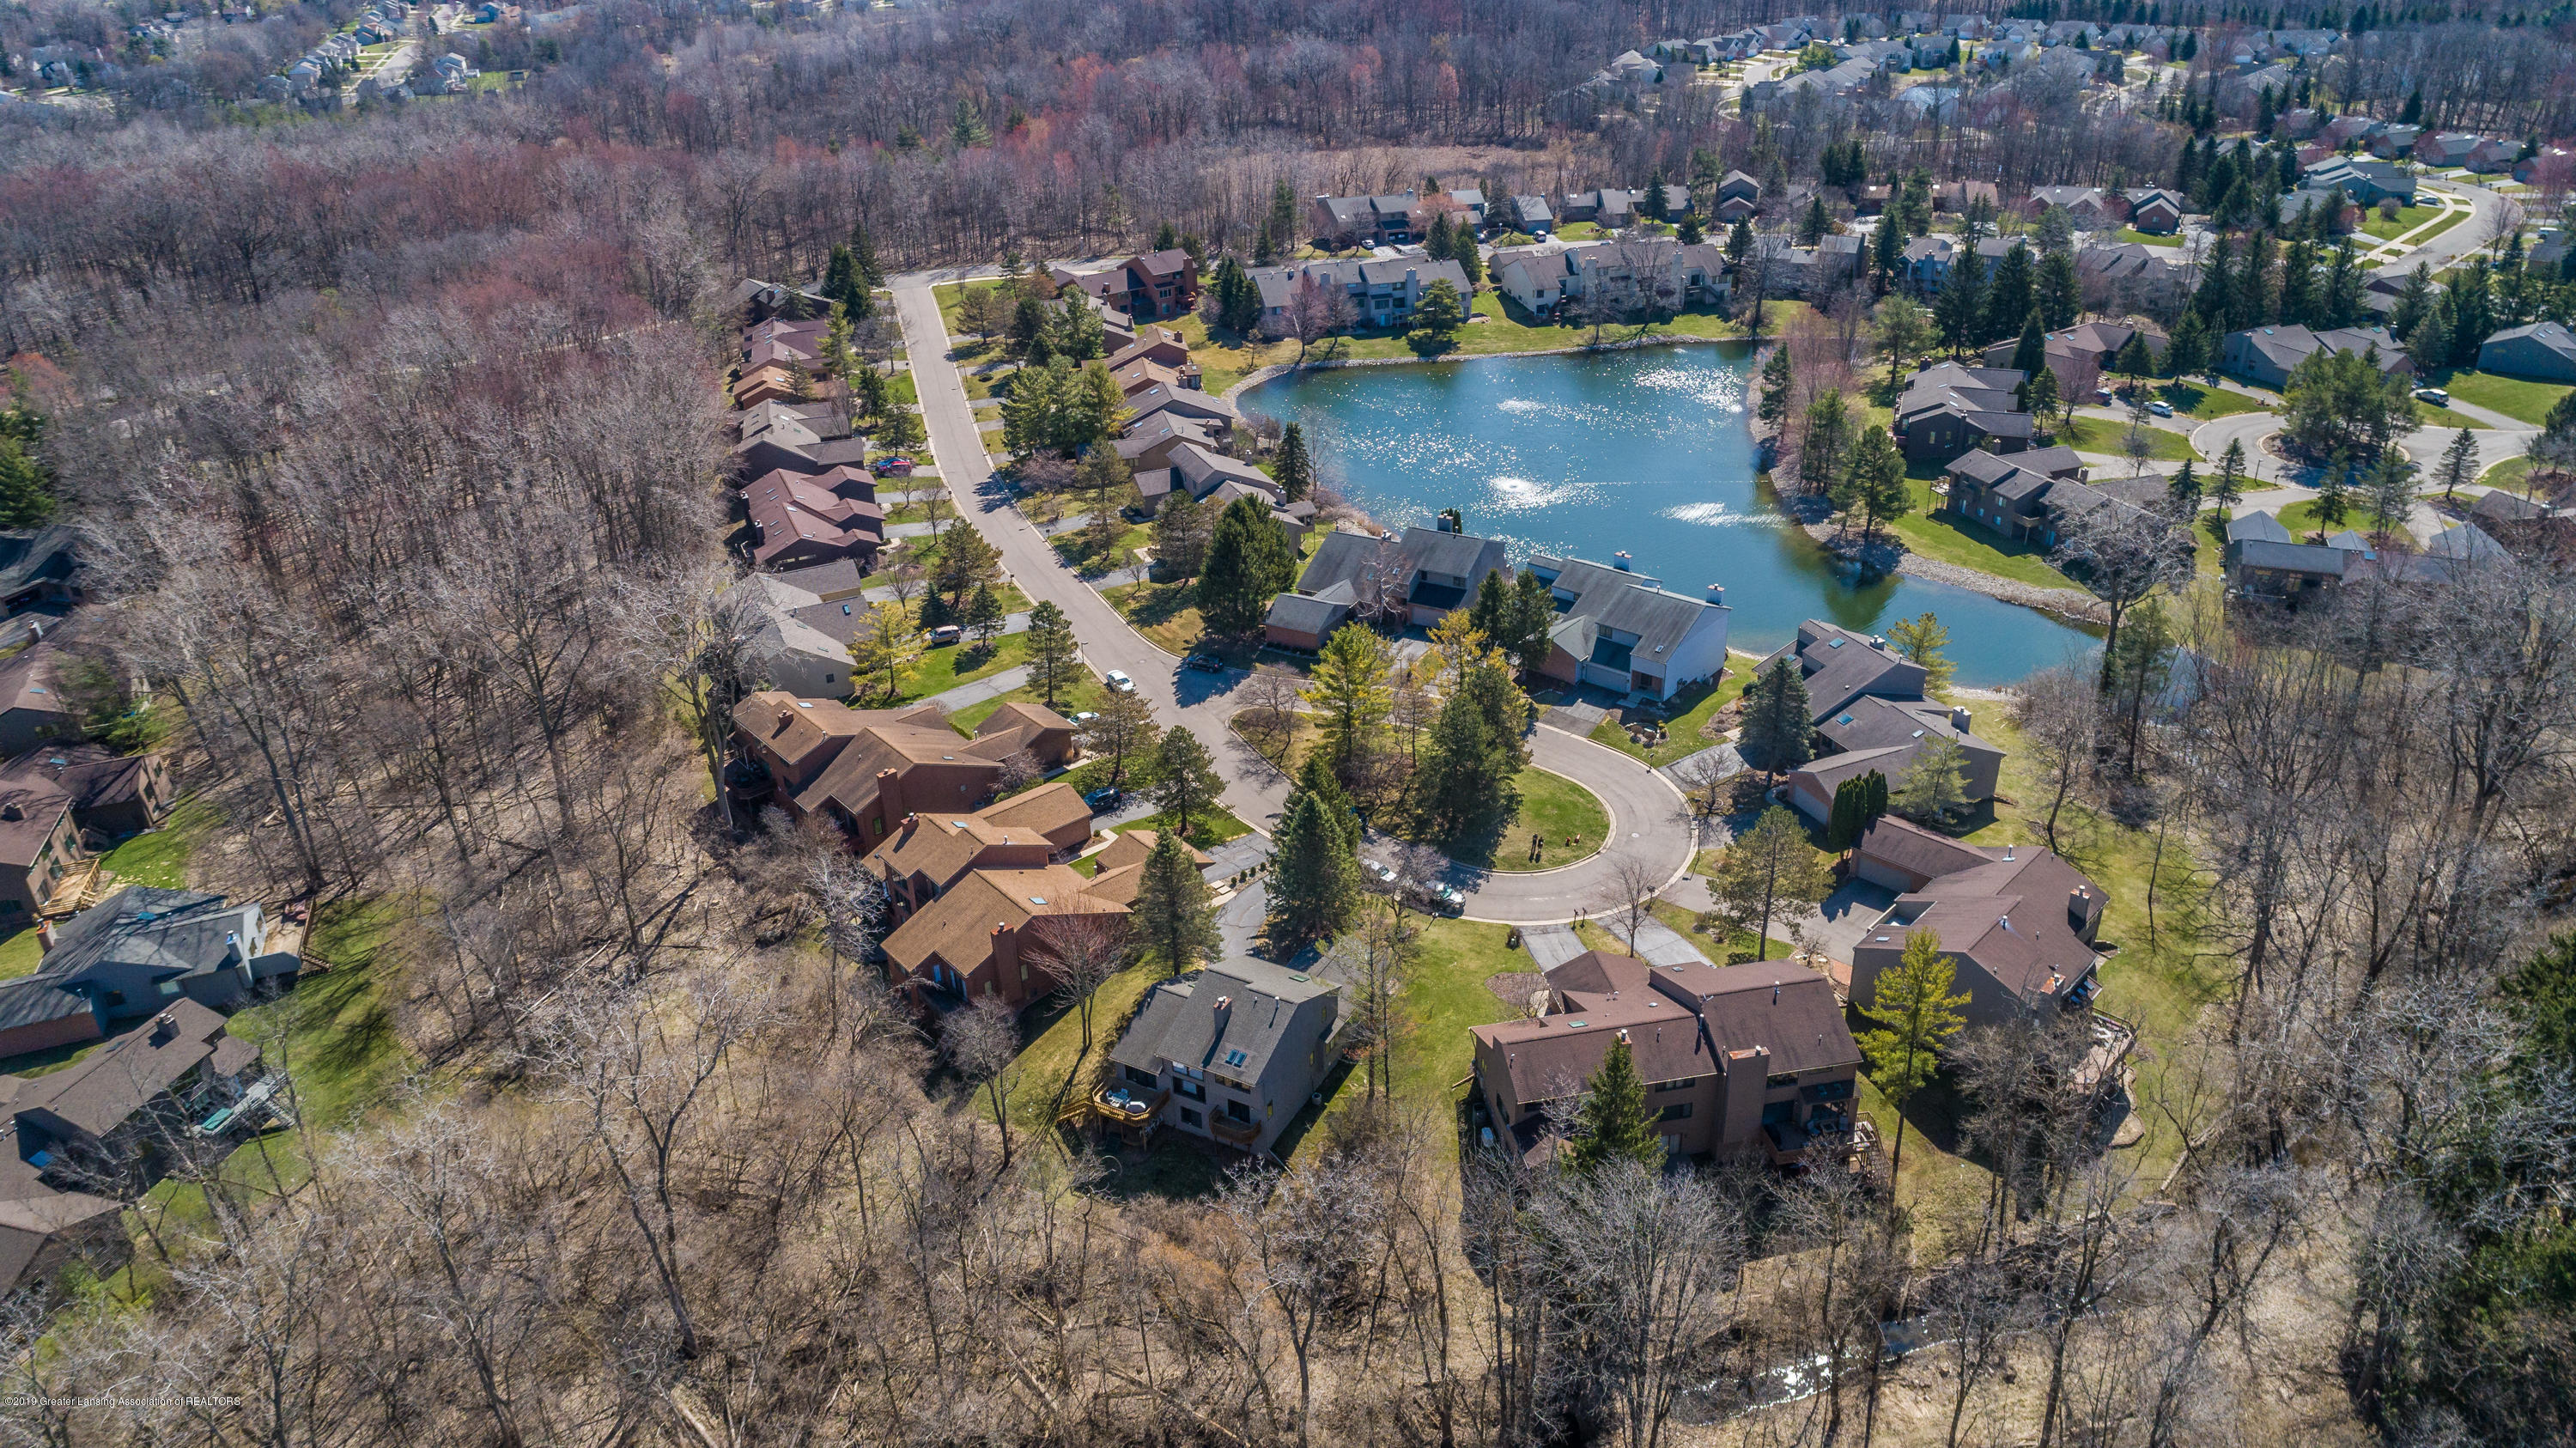 2474 Emerald Lake Dr - EMLL-0223 - 44